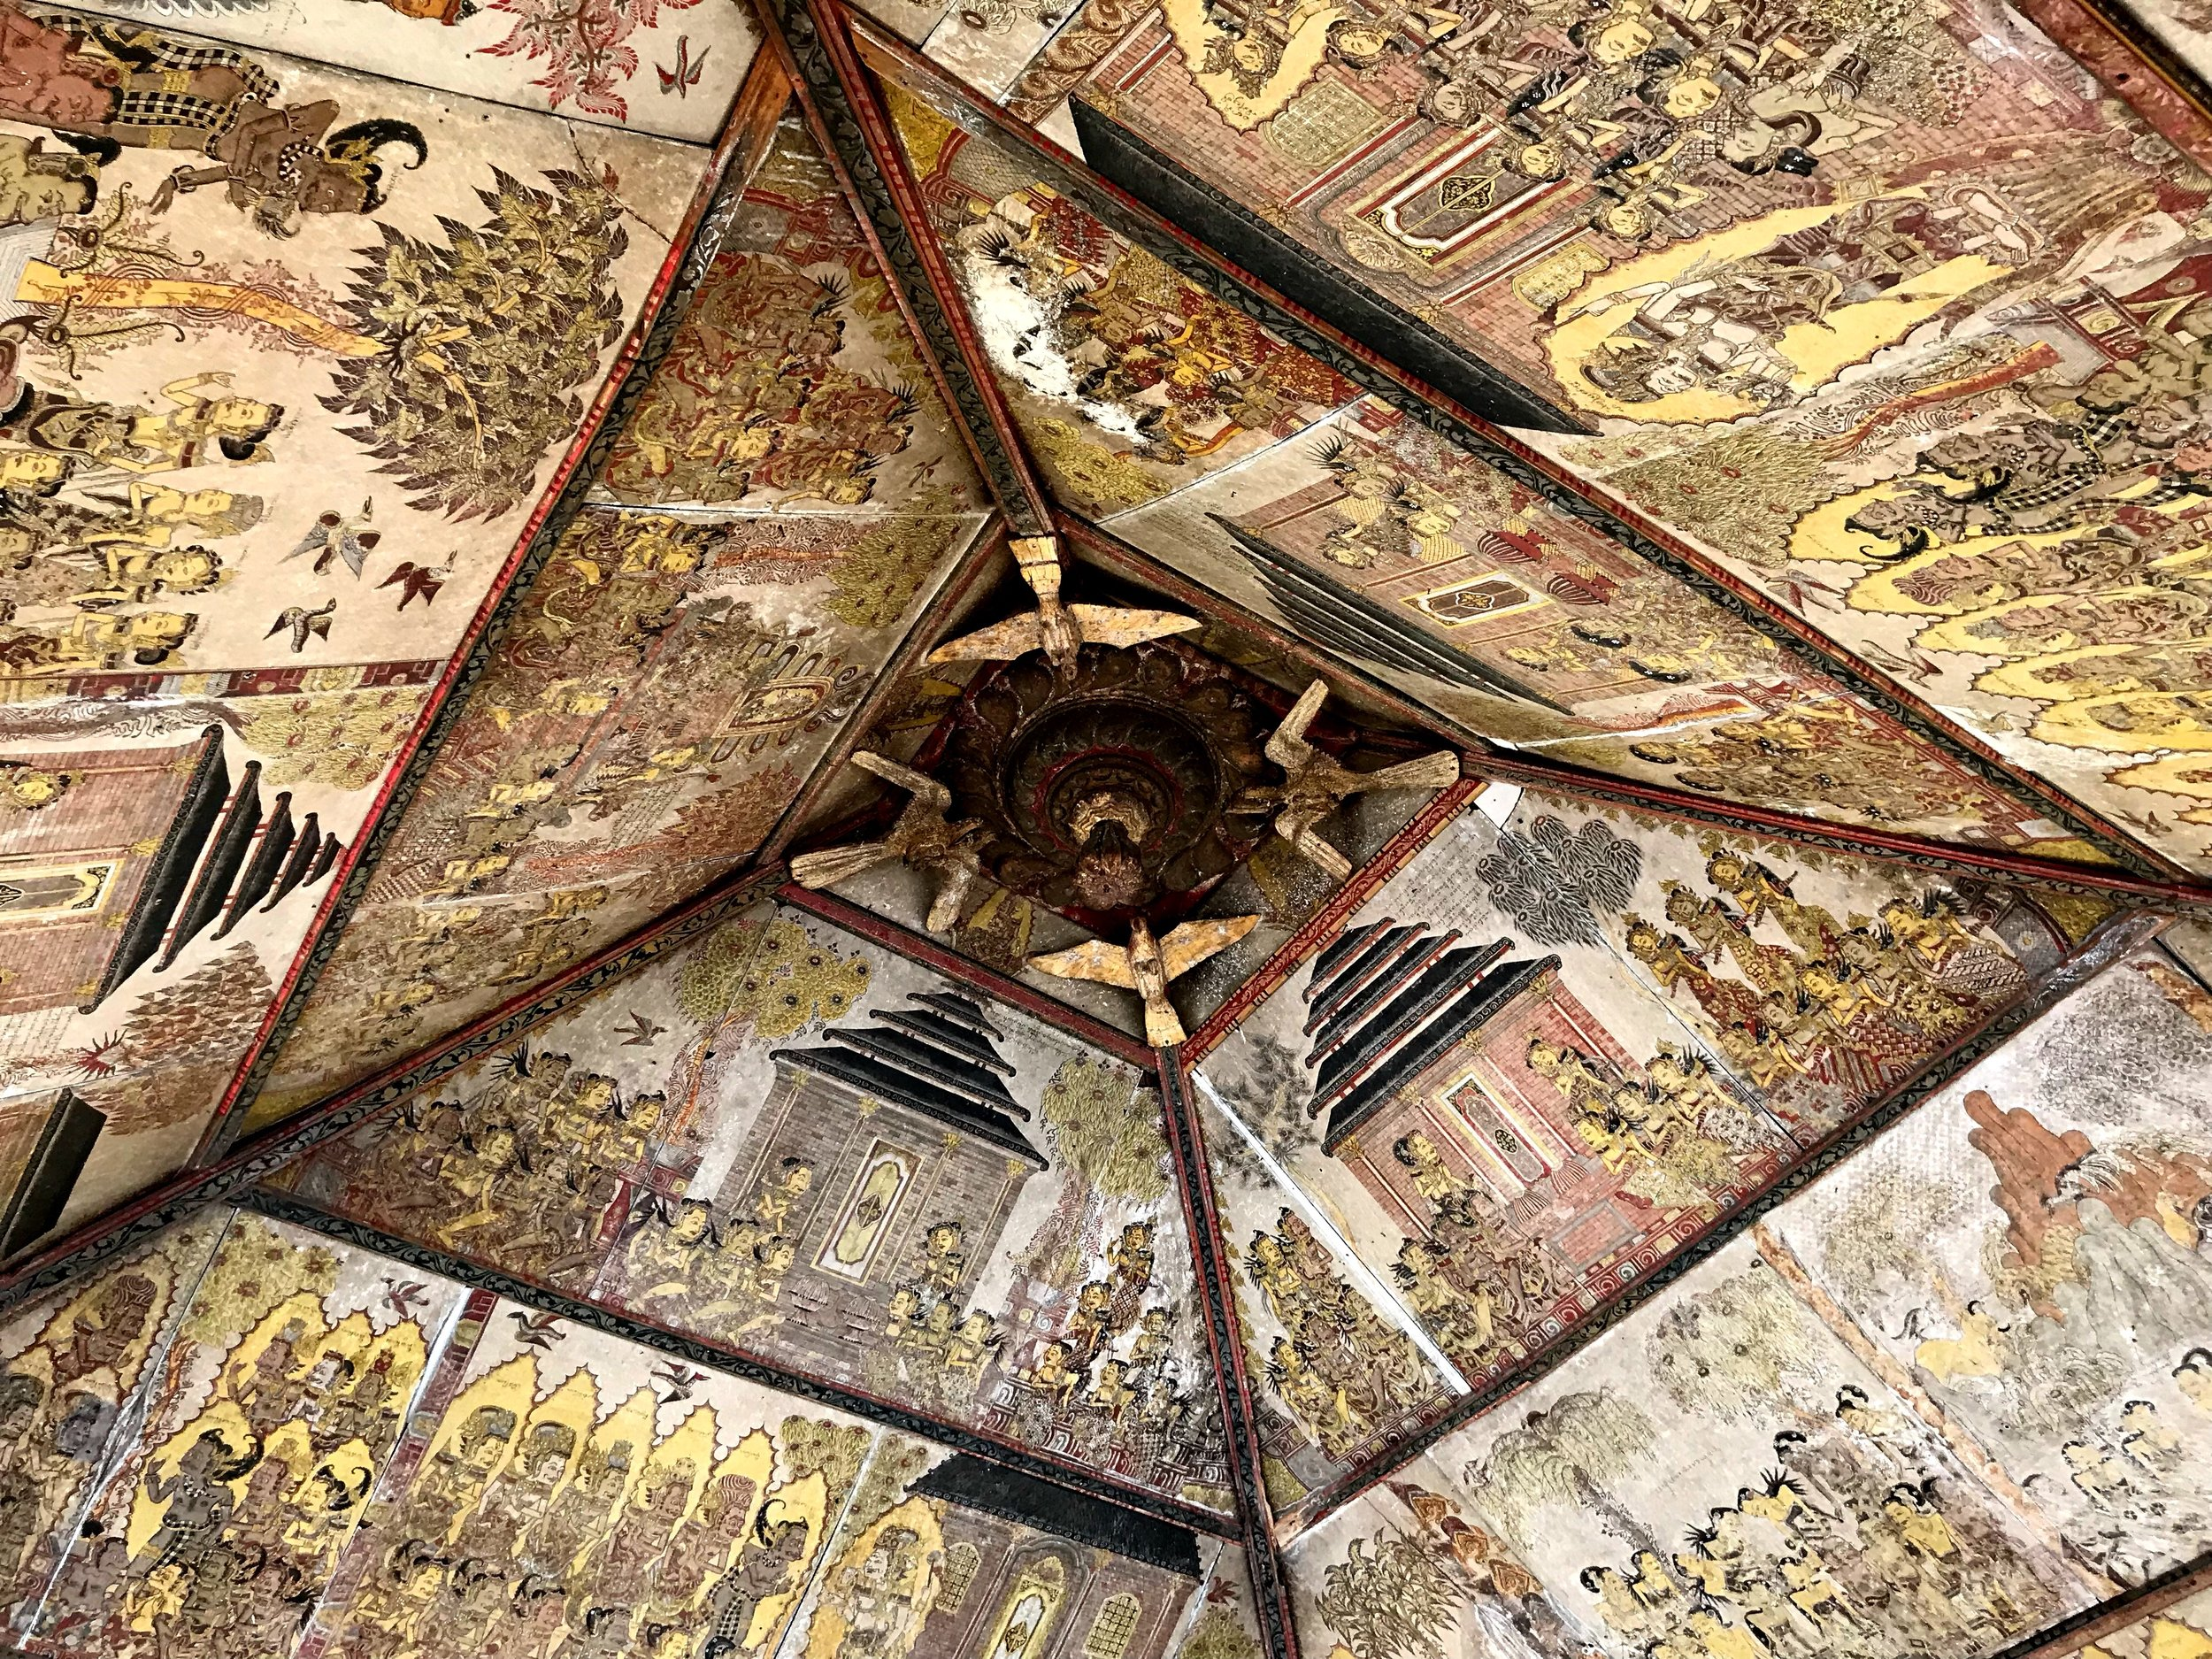 The ceiling is covered with illustrations — it's like a Balinese comic book about a trip to Hell